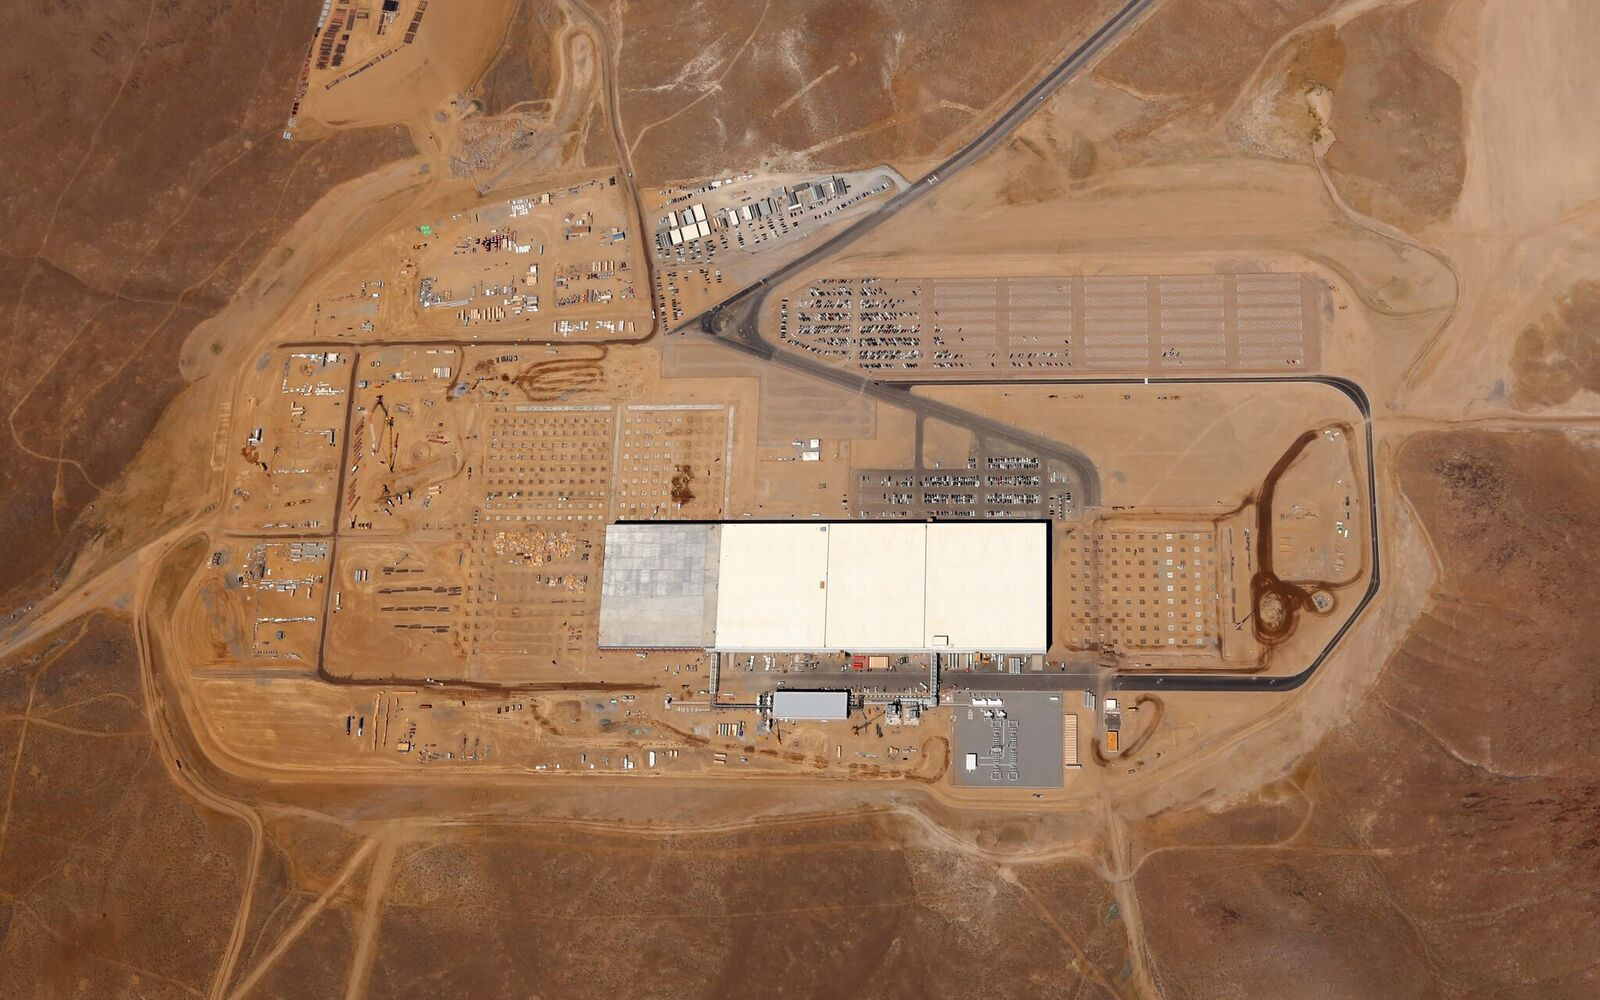 Tesla Gigafactory 1 is just one third of its potential size